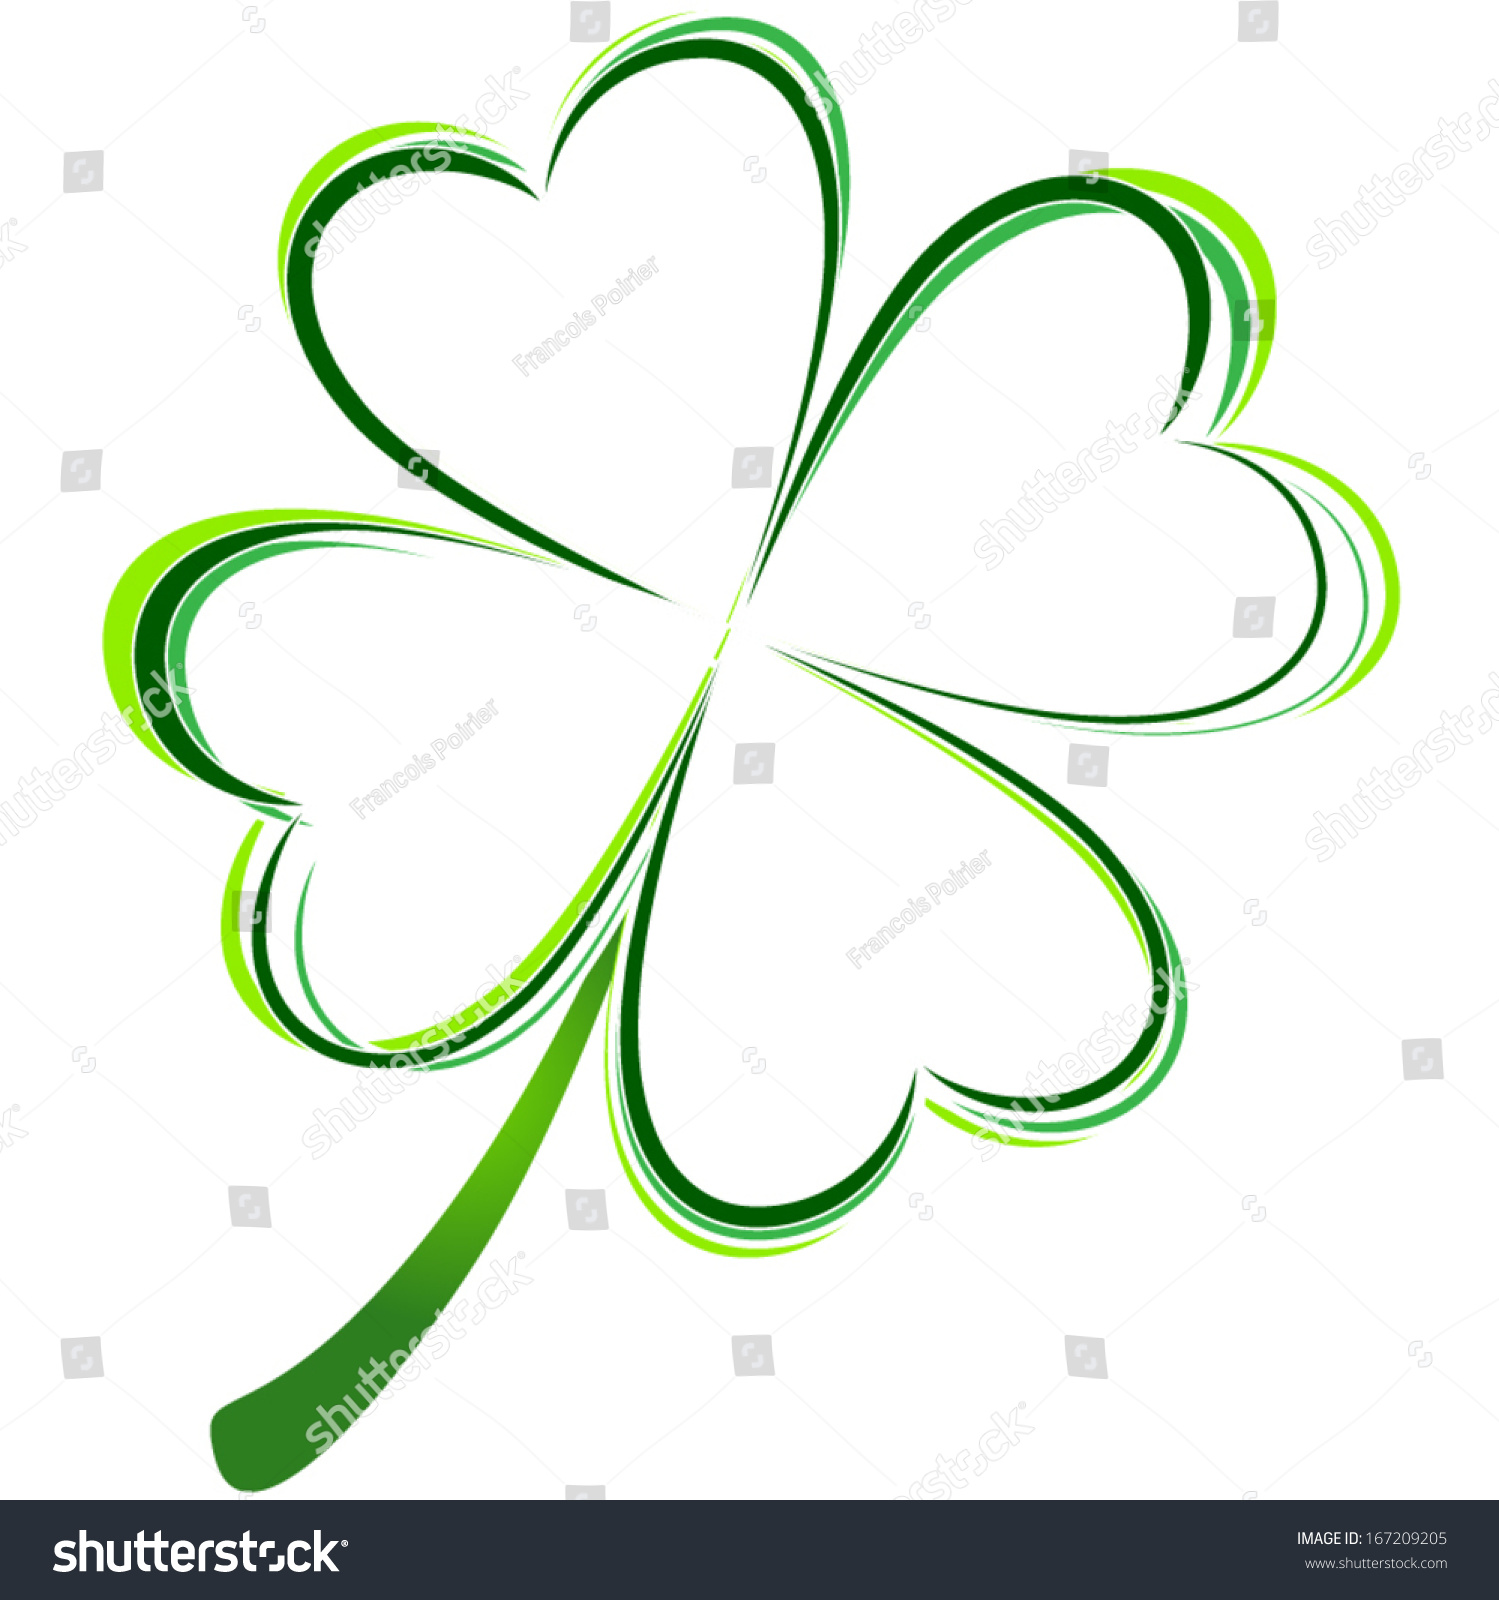 vector illustration green clover picture stock vector 167209205